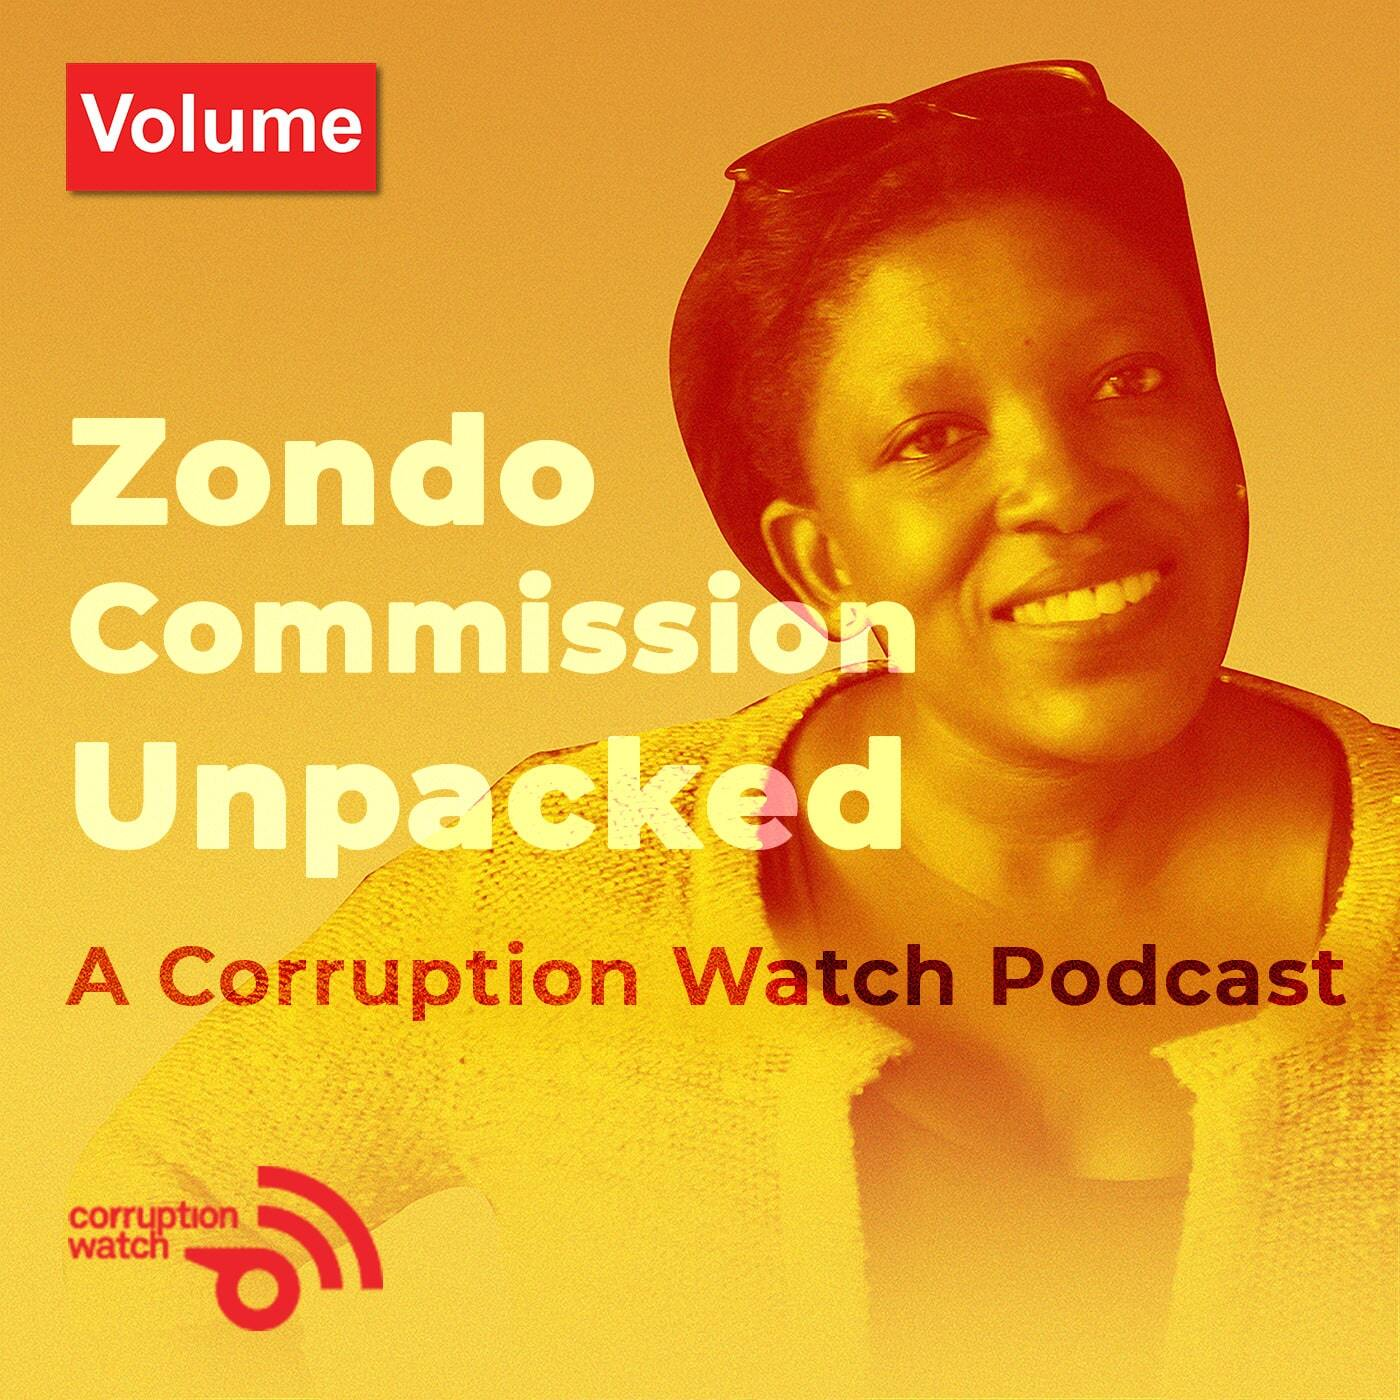 Artwork for podcast The Zondo Commission Unpacked: a Corruption Watch Podcast